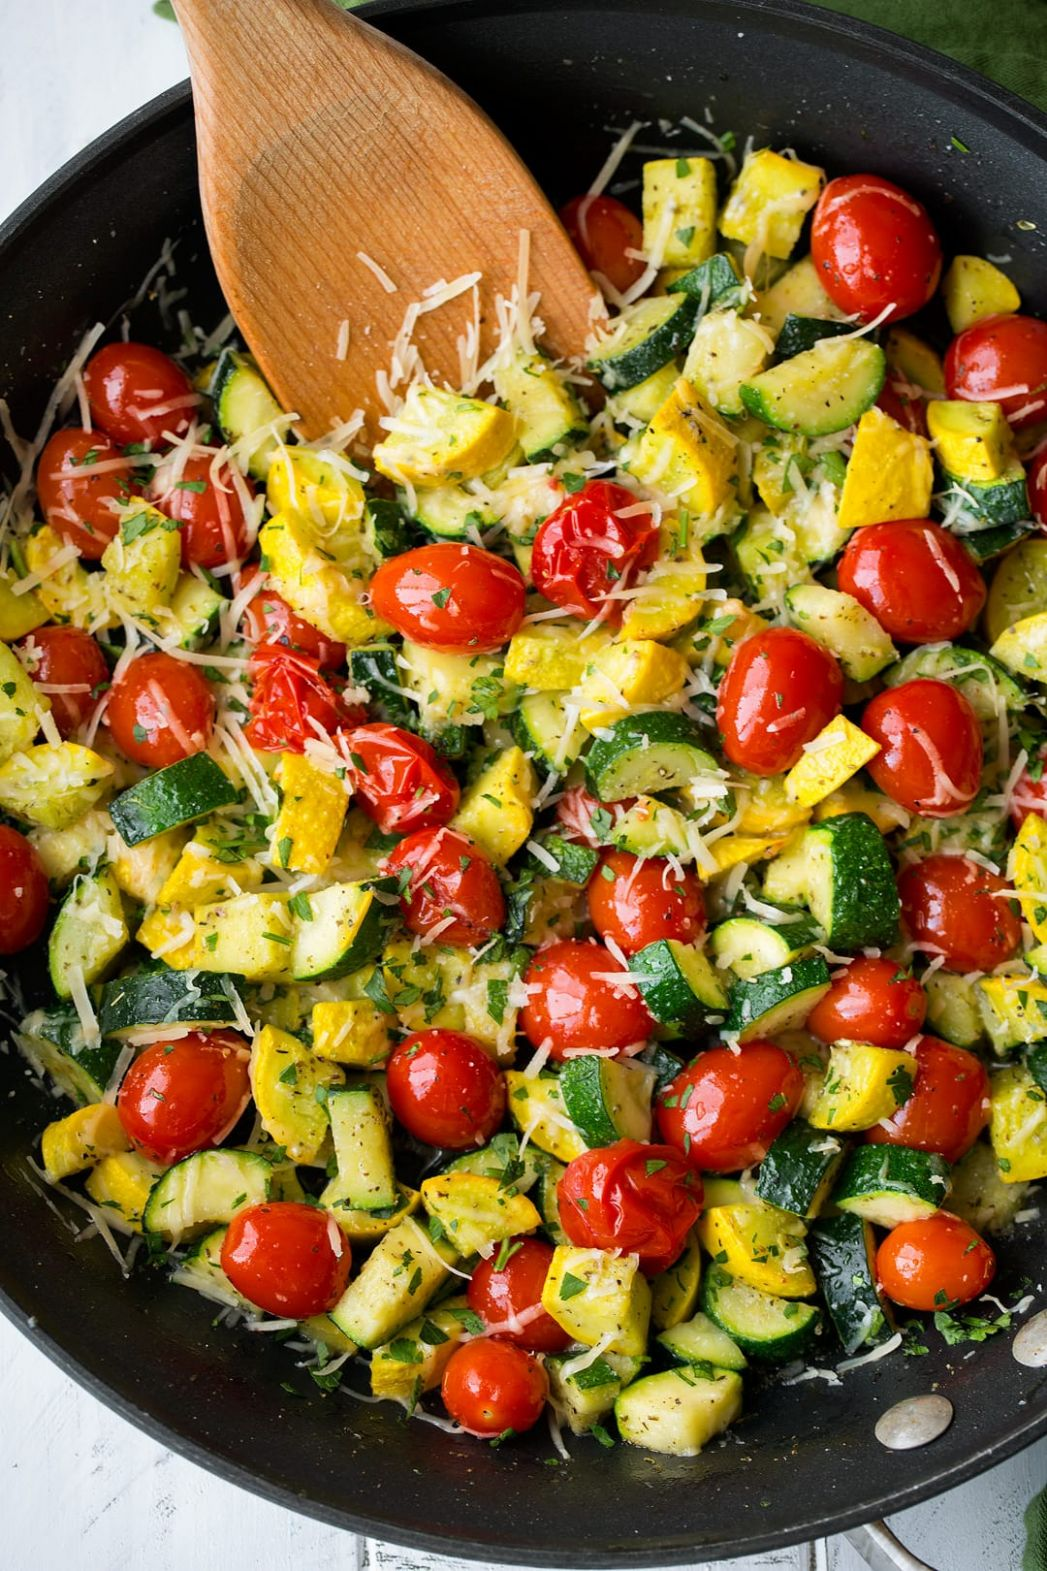 Skillet Garlic-Parmesan Zucchini Squash and Tomatoes - Recipes For Summer Squash And Zucchini